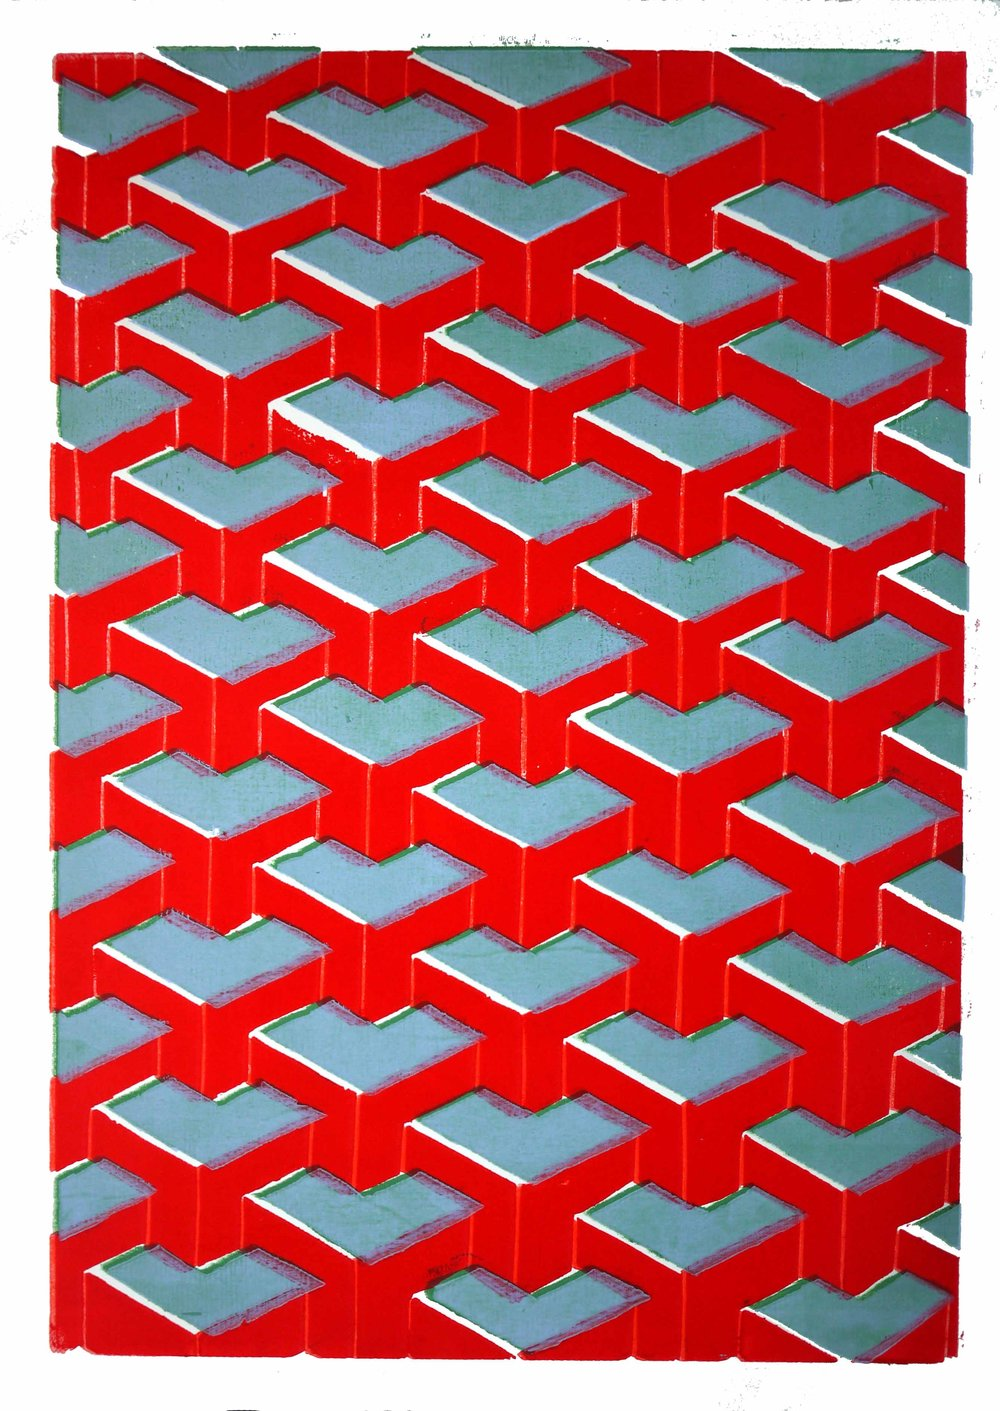 "Pattern Chevron Orange Wood Block Color 23 x 29"" 2017 $350"